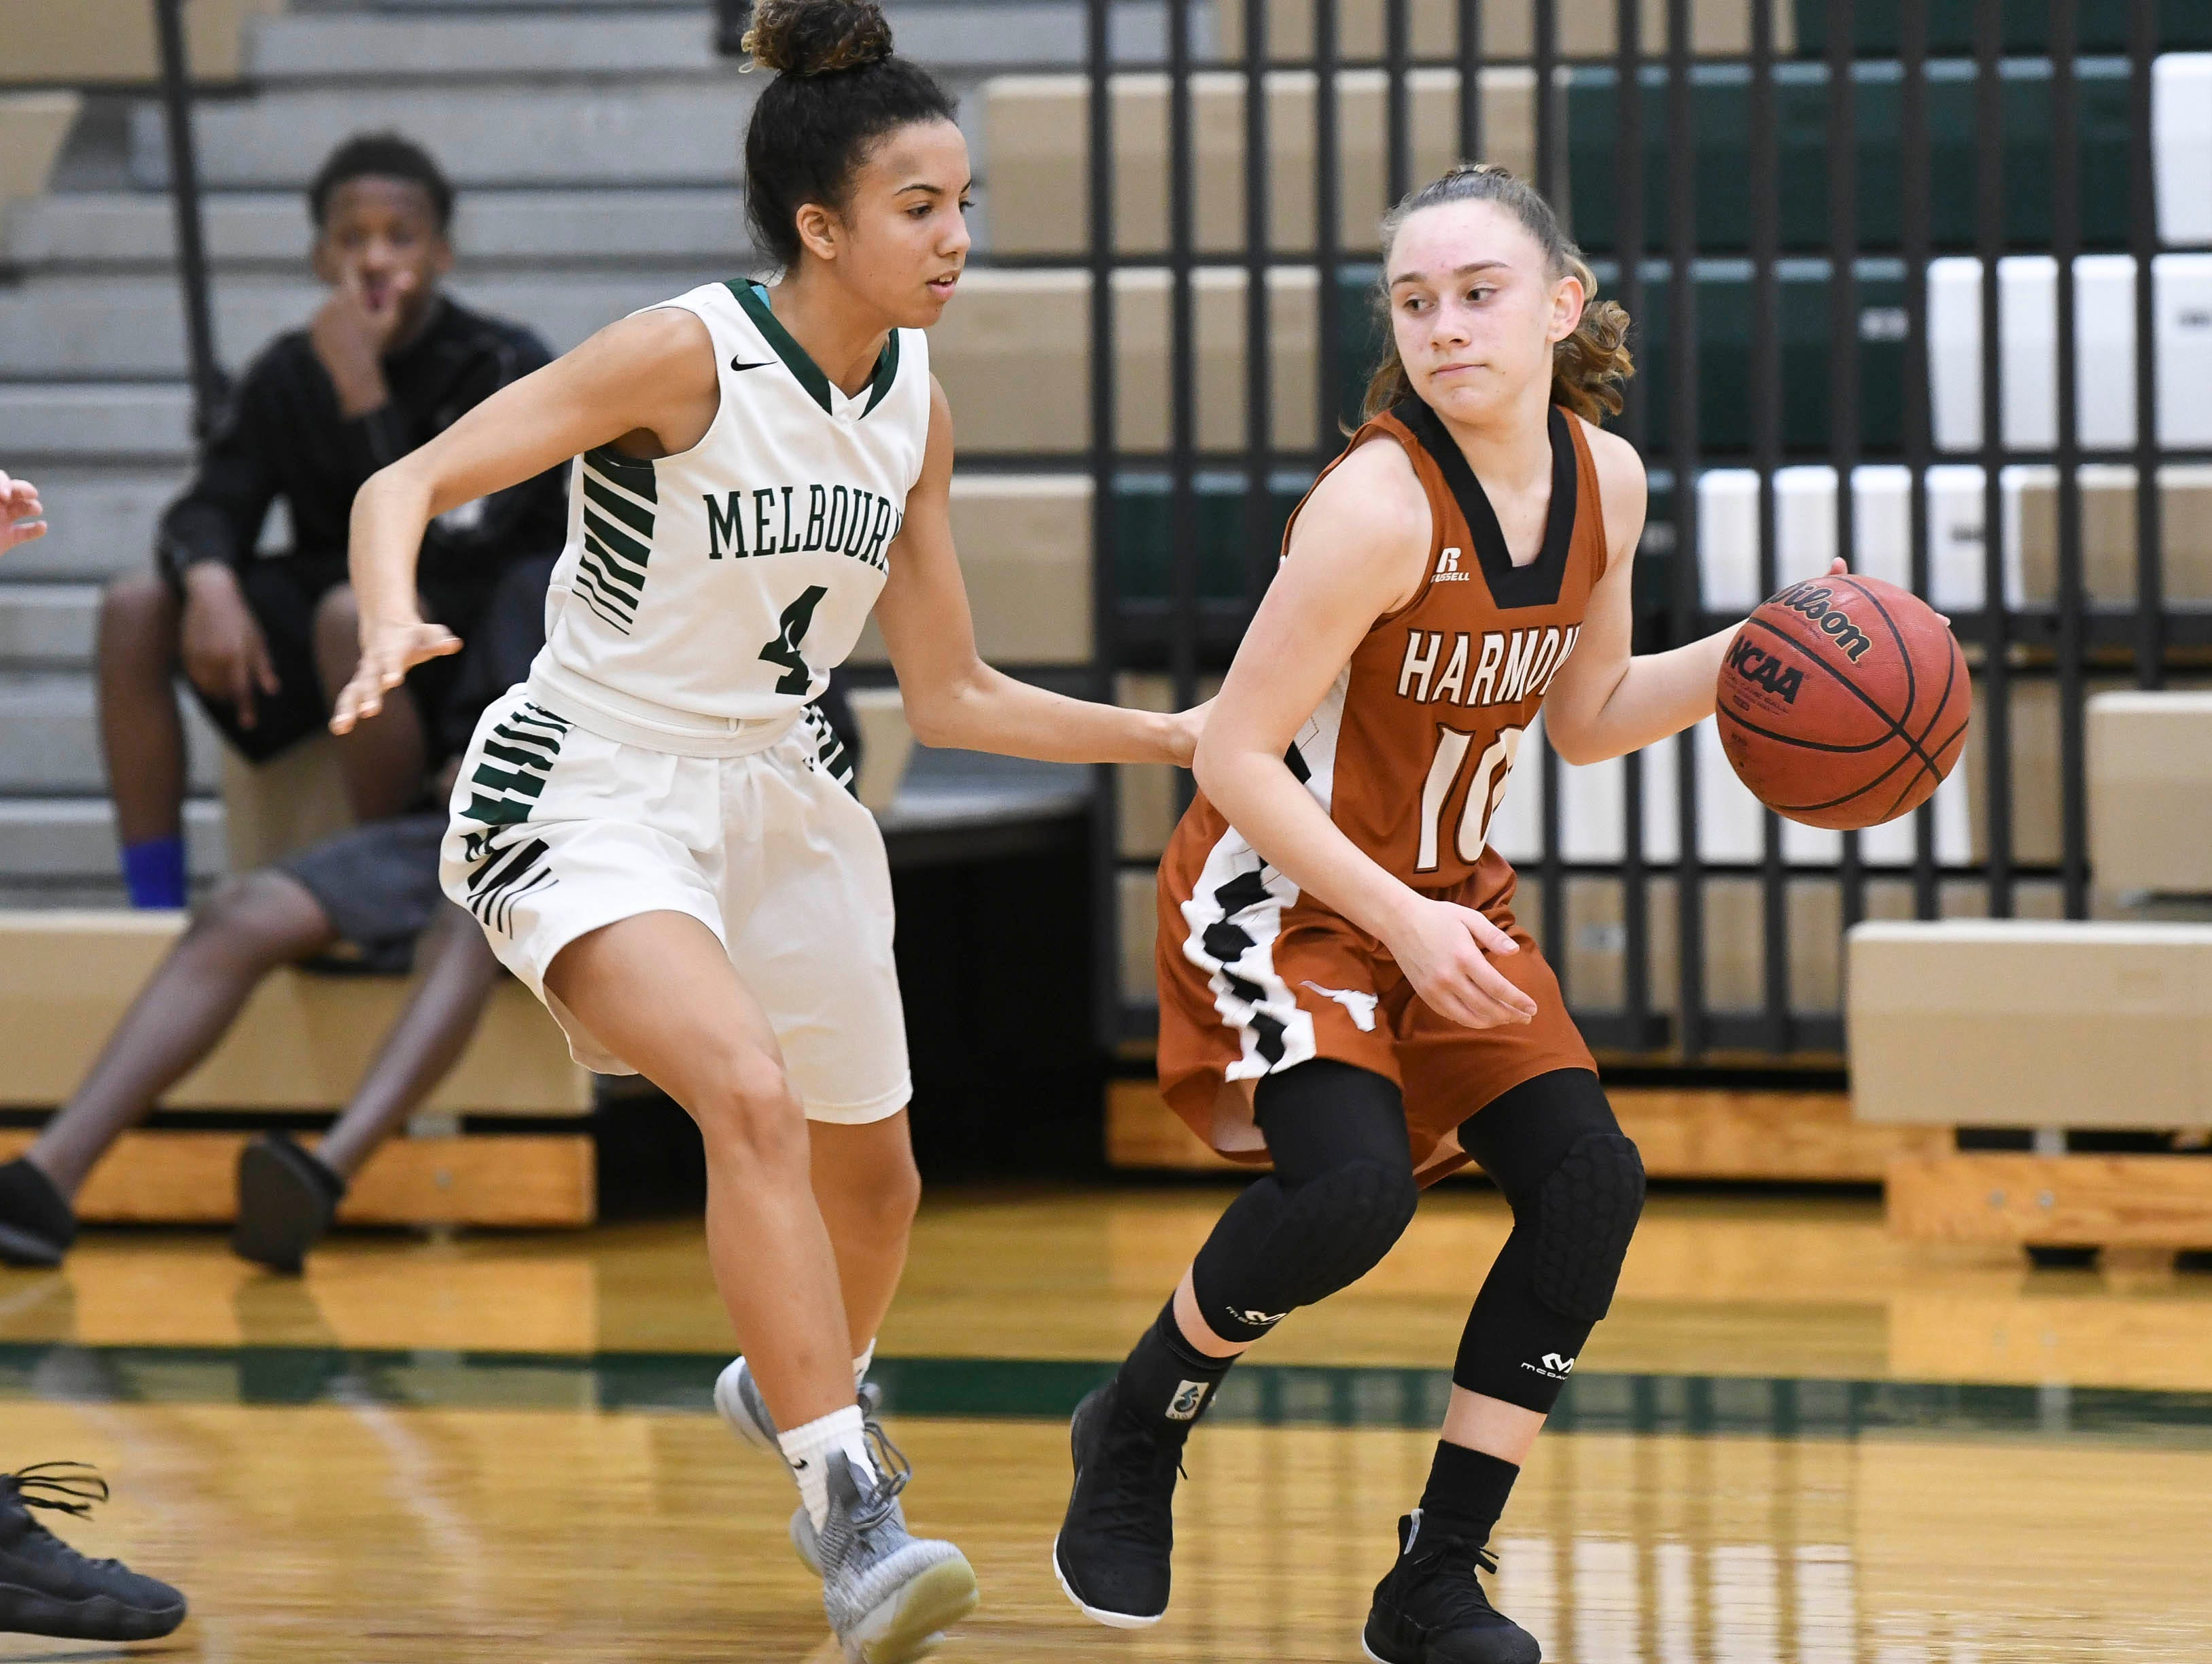 Melbourne's Jayla Charles guards Carlee Fitzgerald of Harmony during their game Tuesday.